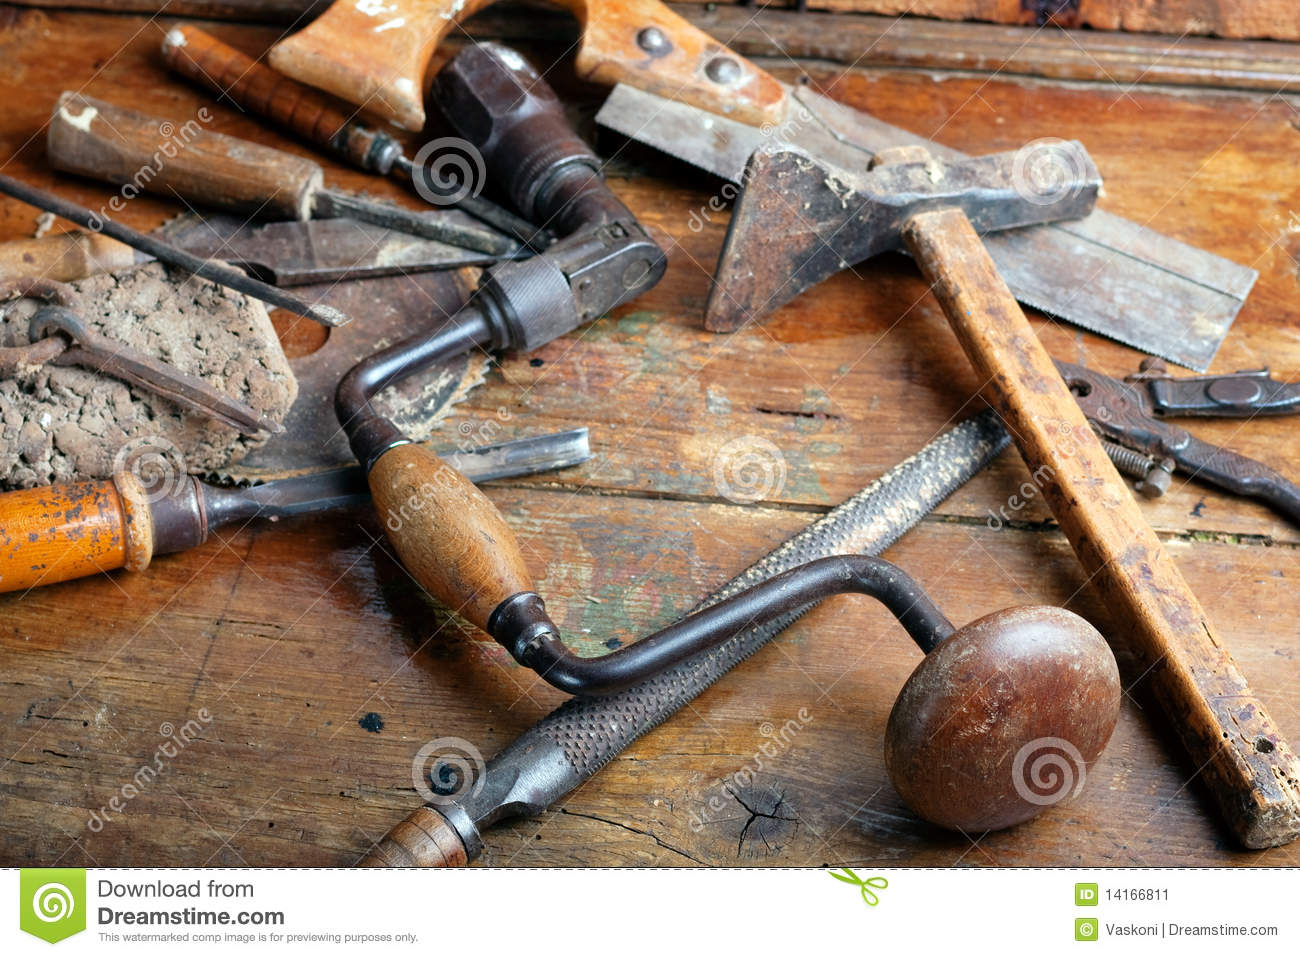 Vintage Woodworking Tools Stock Image Image Of Carpenter 14166811